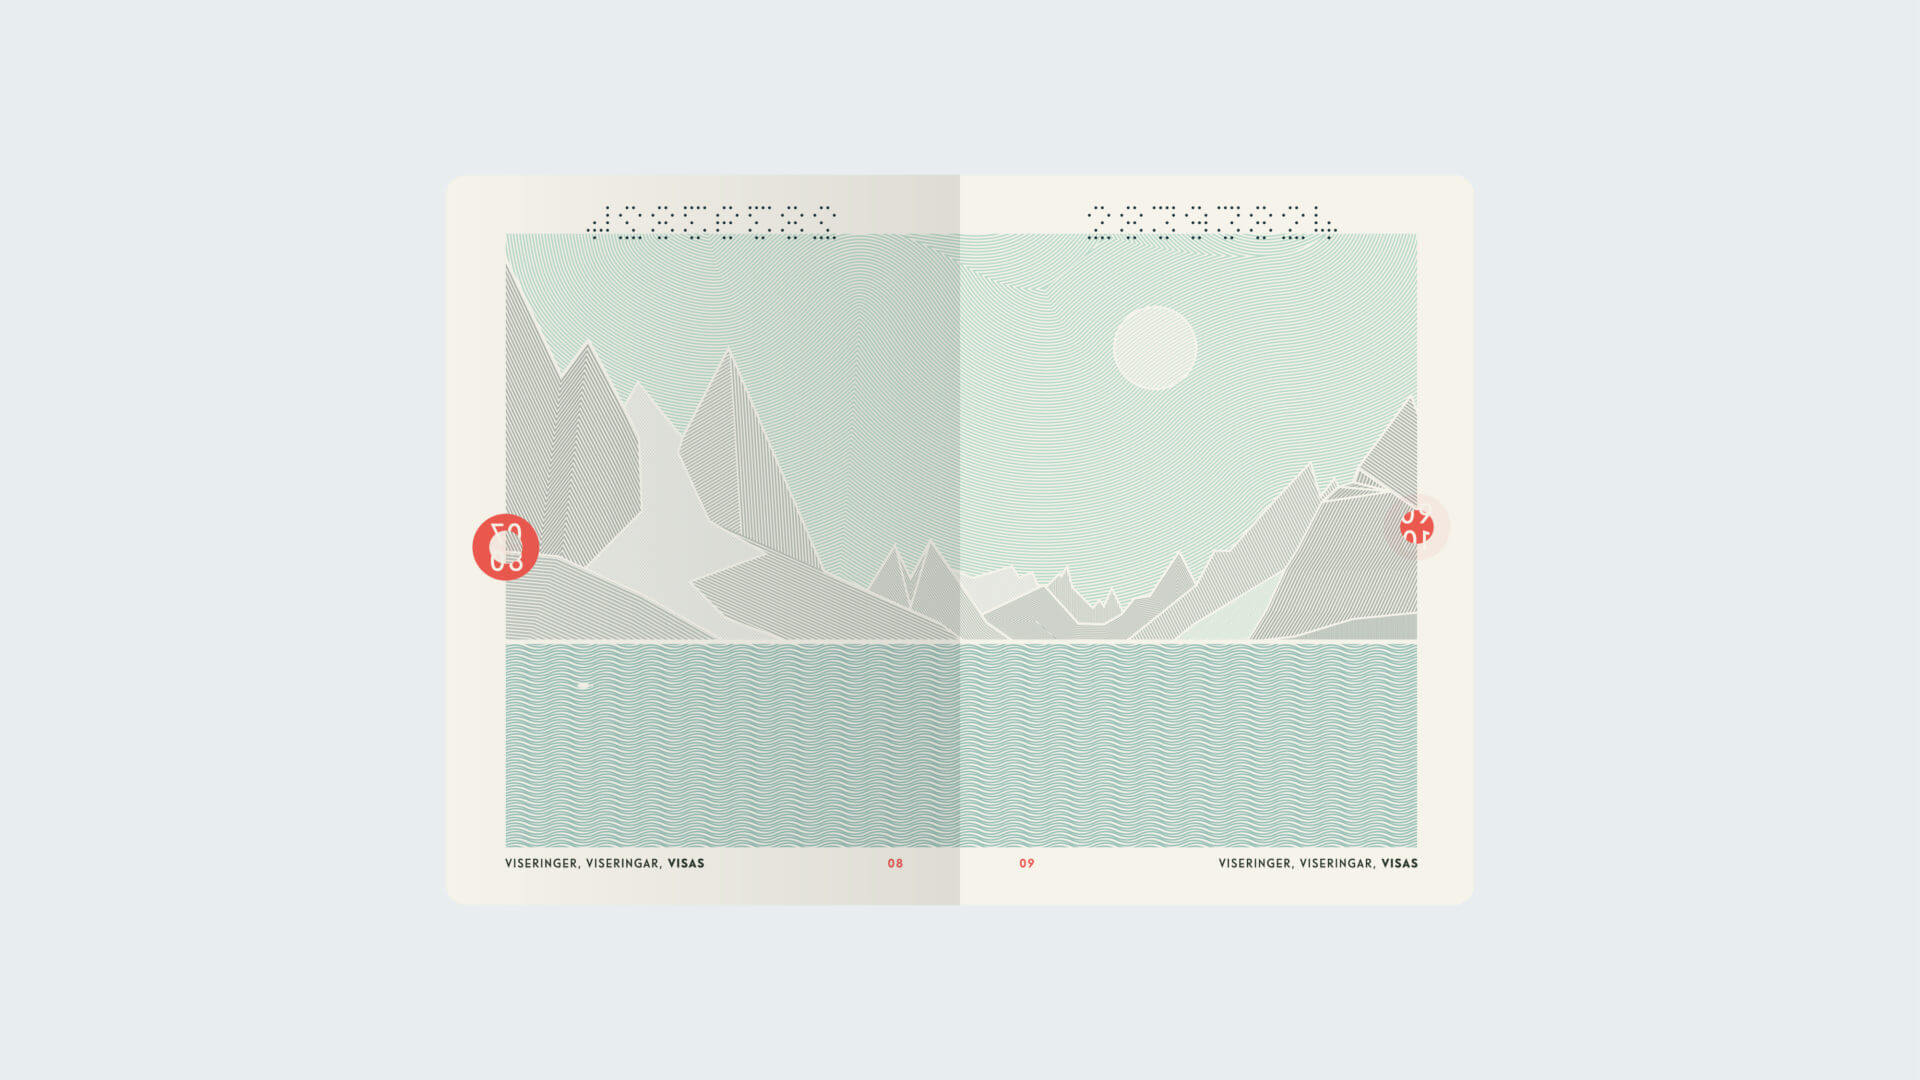 Oslo-based design studio Neue, did a great job redesigning the Norwegian passport